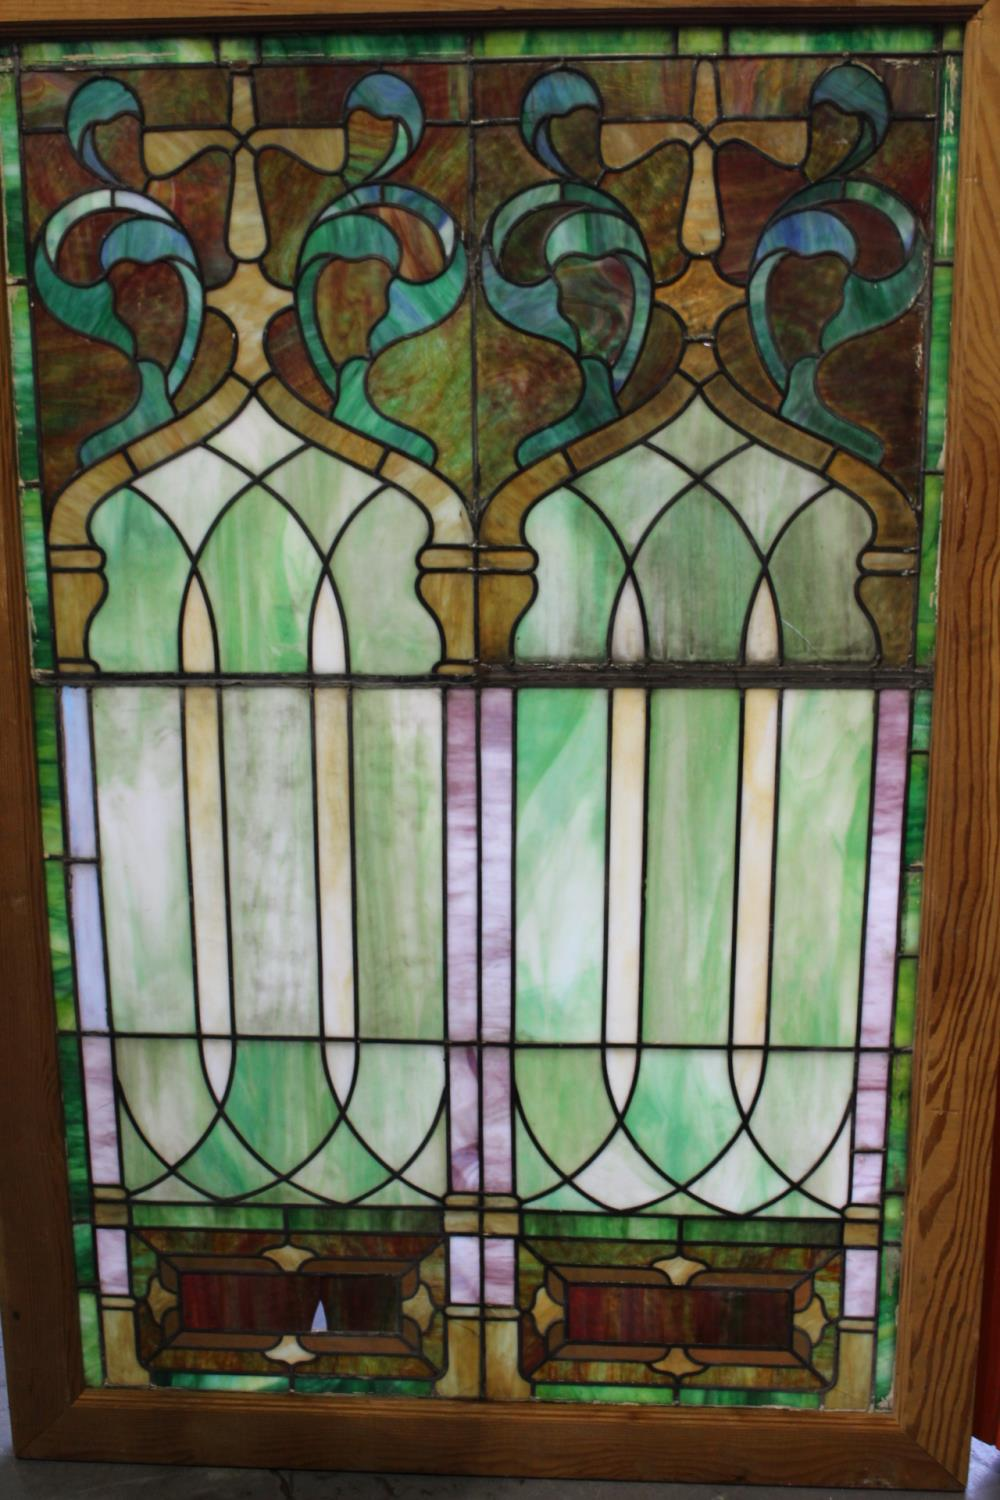 Leaded stain glass window - Image 2 of 2